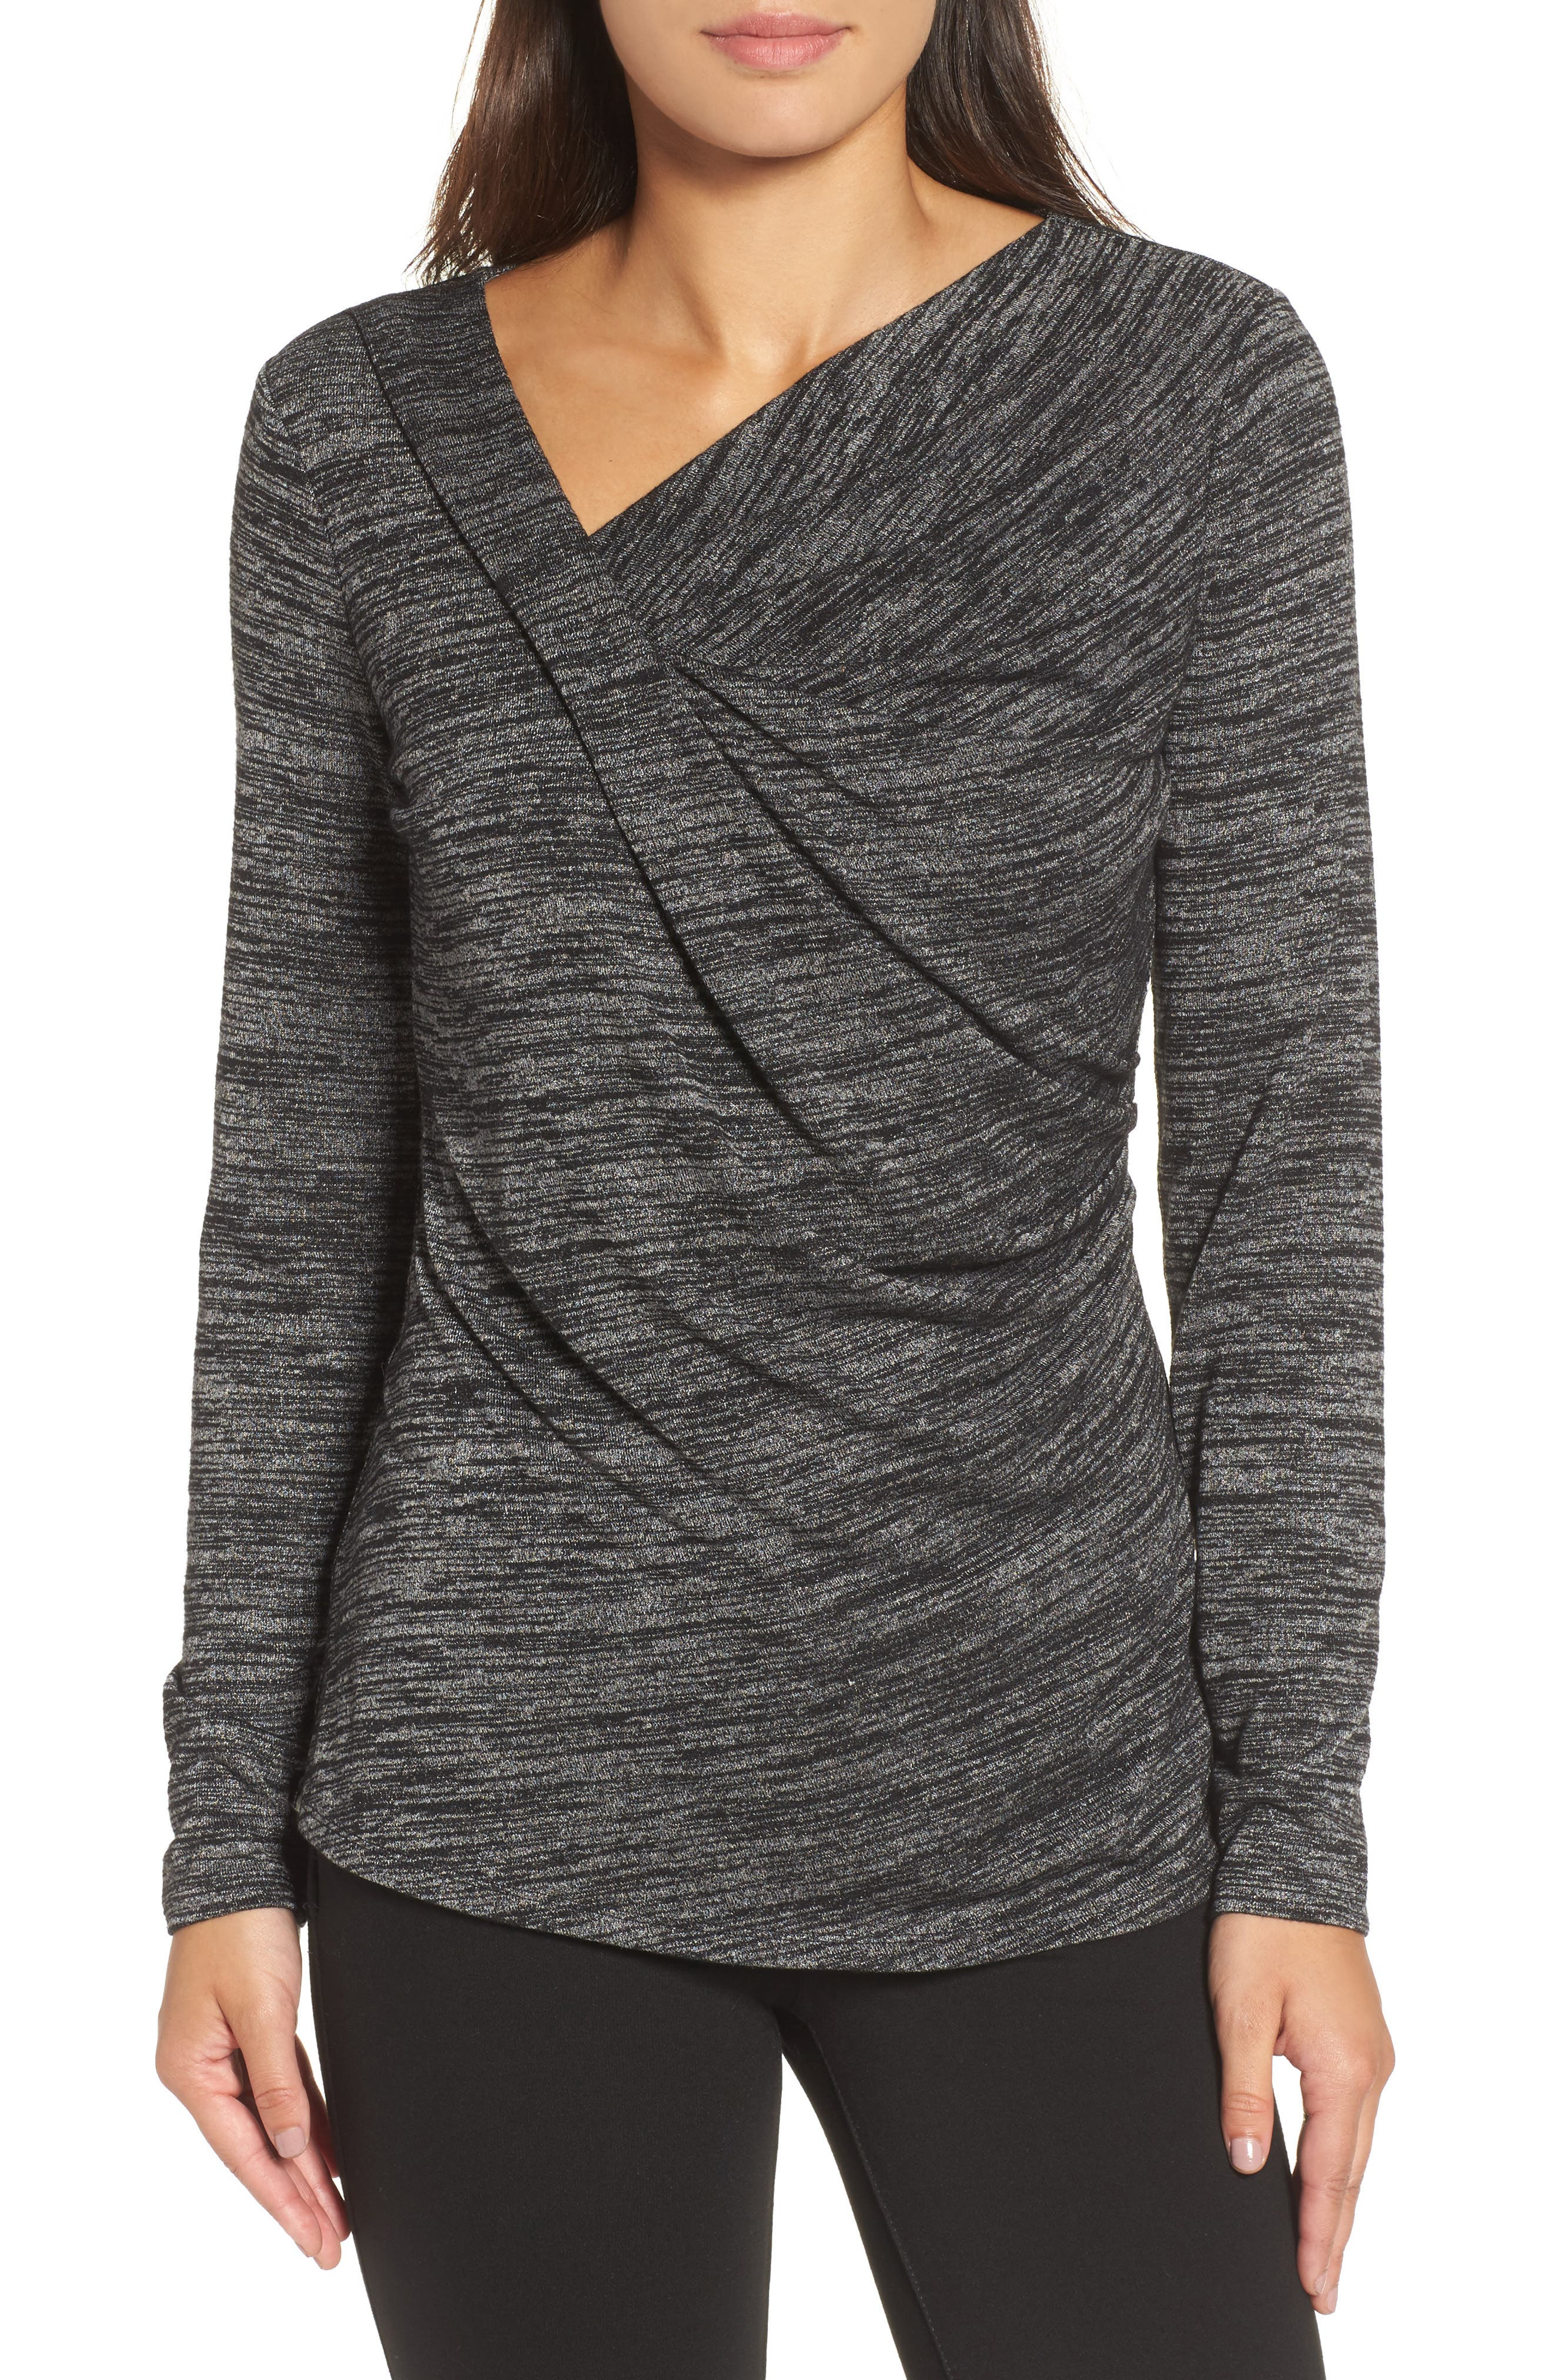 Every Occasion Drape Top,                         Main,                         color, Grey Mix